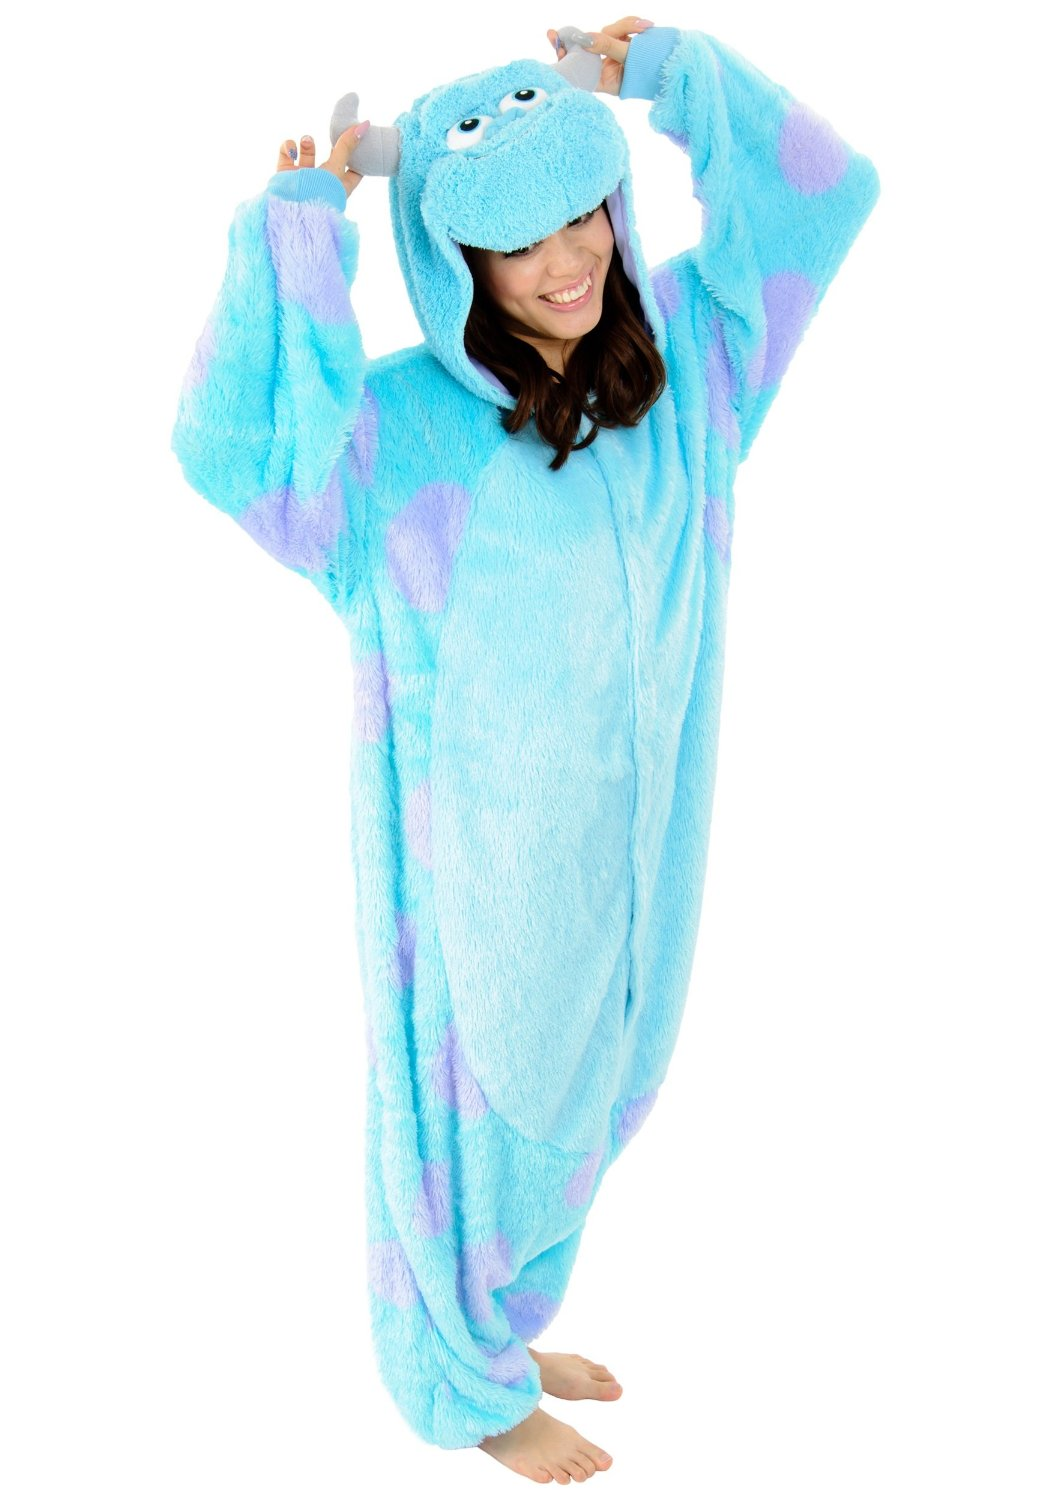 Blue Sully Animal Kigurumi Onesie - Available Now For $65. | Contacts Cow